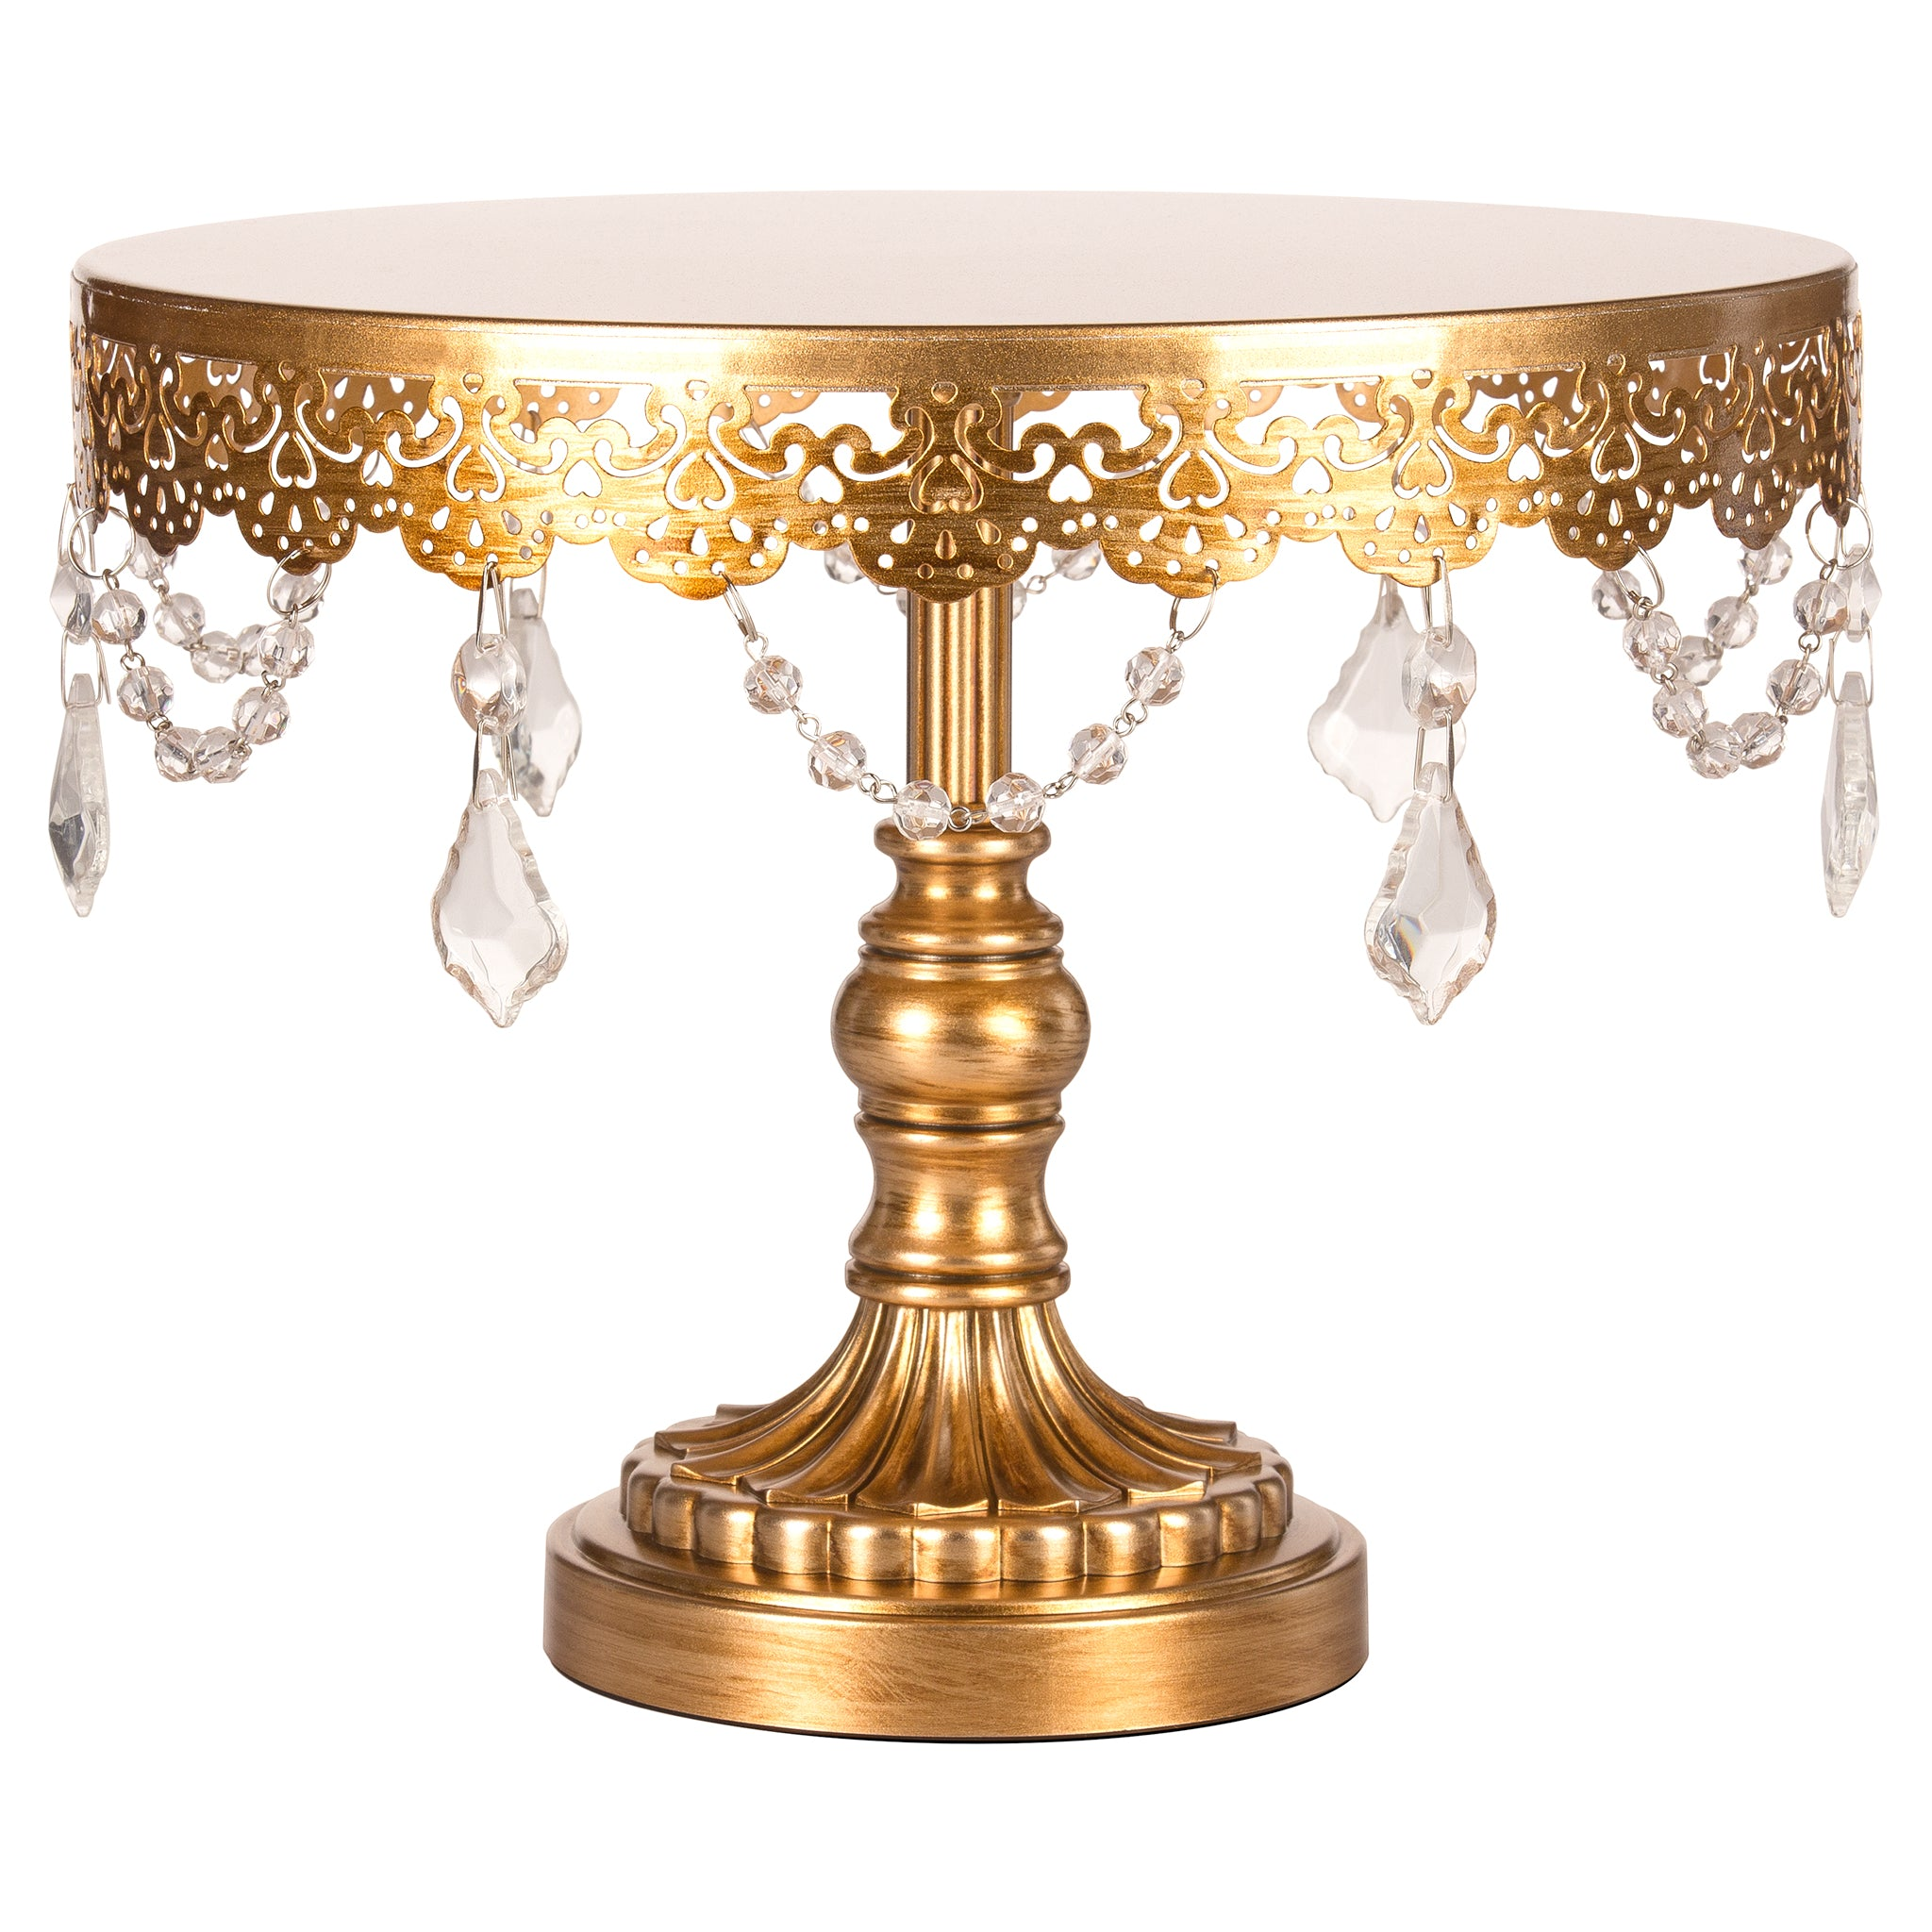 Amalfi Decor 10 Inch Crystal-Draped Round Metal Cake Stand (Gold) | Stainless Steel Frame